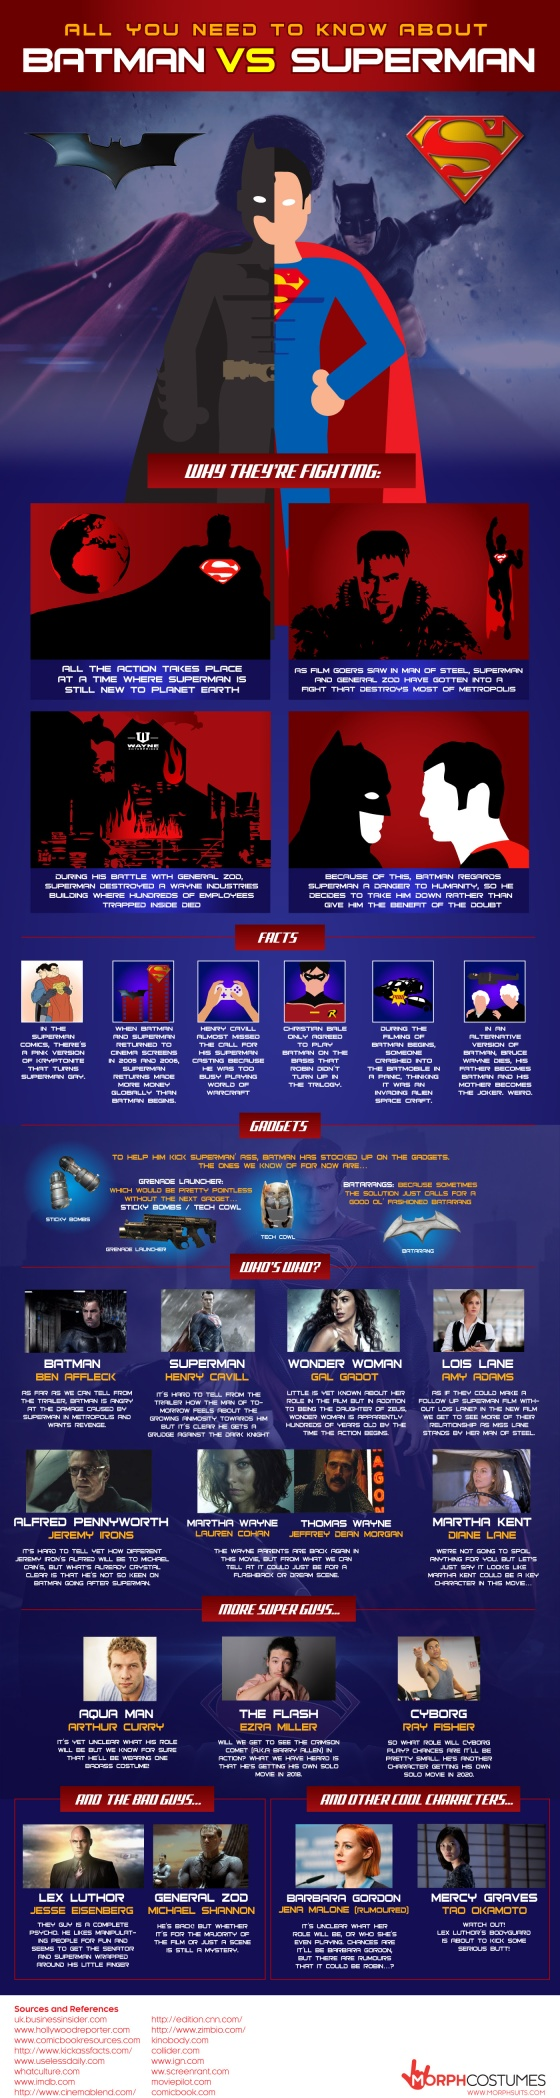 BatmanVsSuperManInfoGraphic